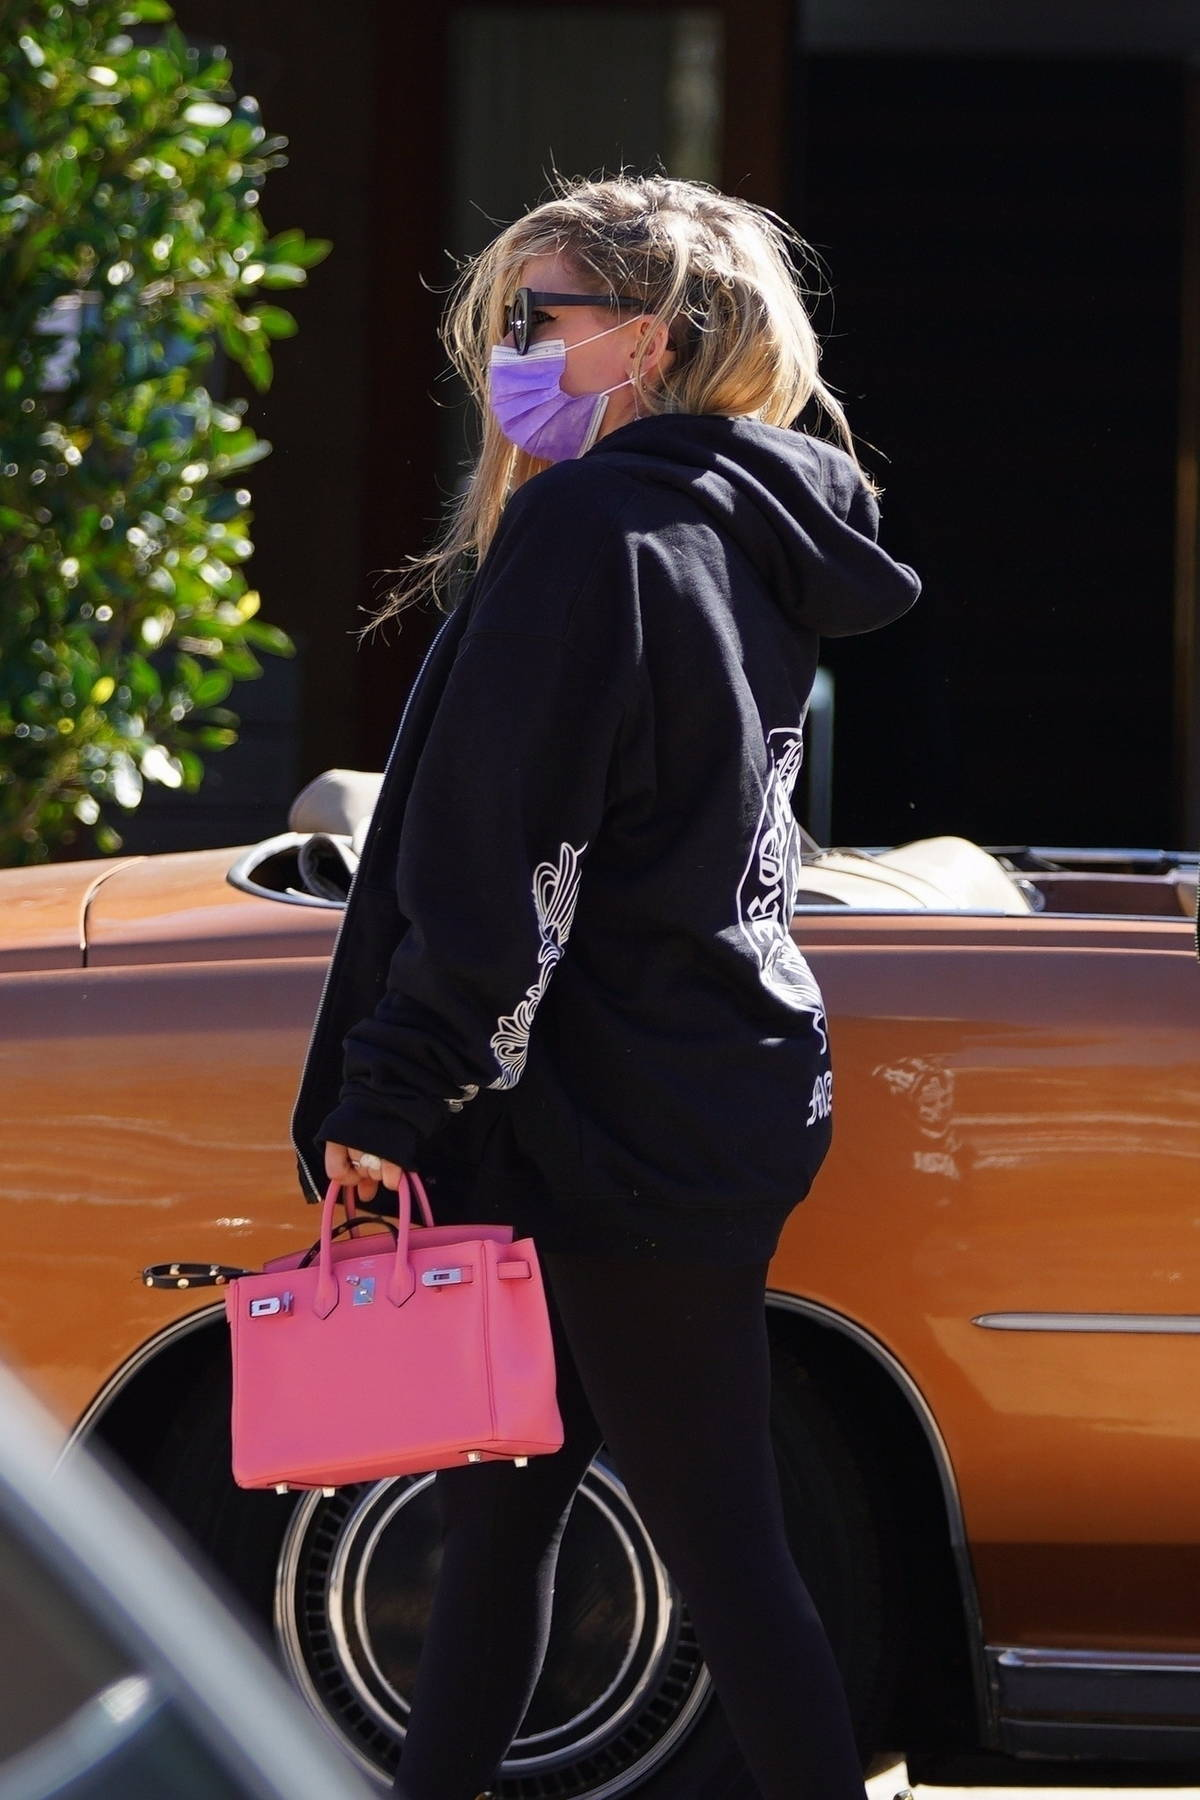 Avril Lavigne and Mod Sun seen arriving for lunch at SoHo house in Malibu, California